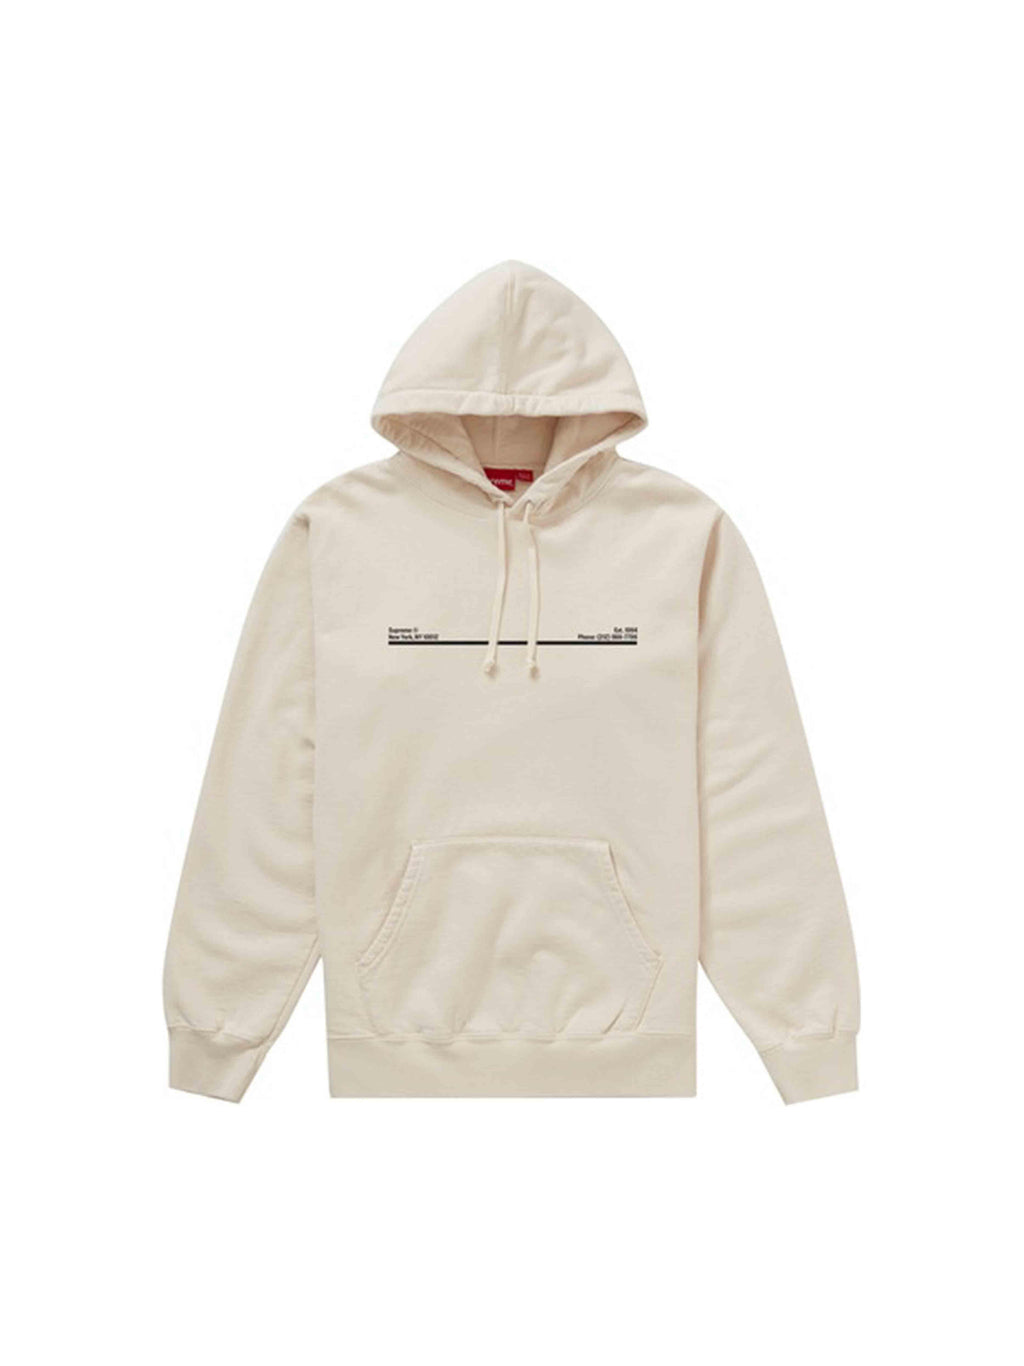 Supreme Shop Hooded Sweatshirt New York City Natural [FW20] - PRIOR